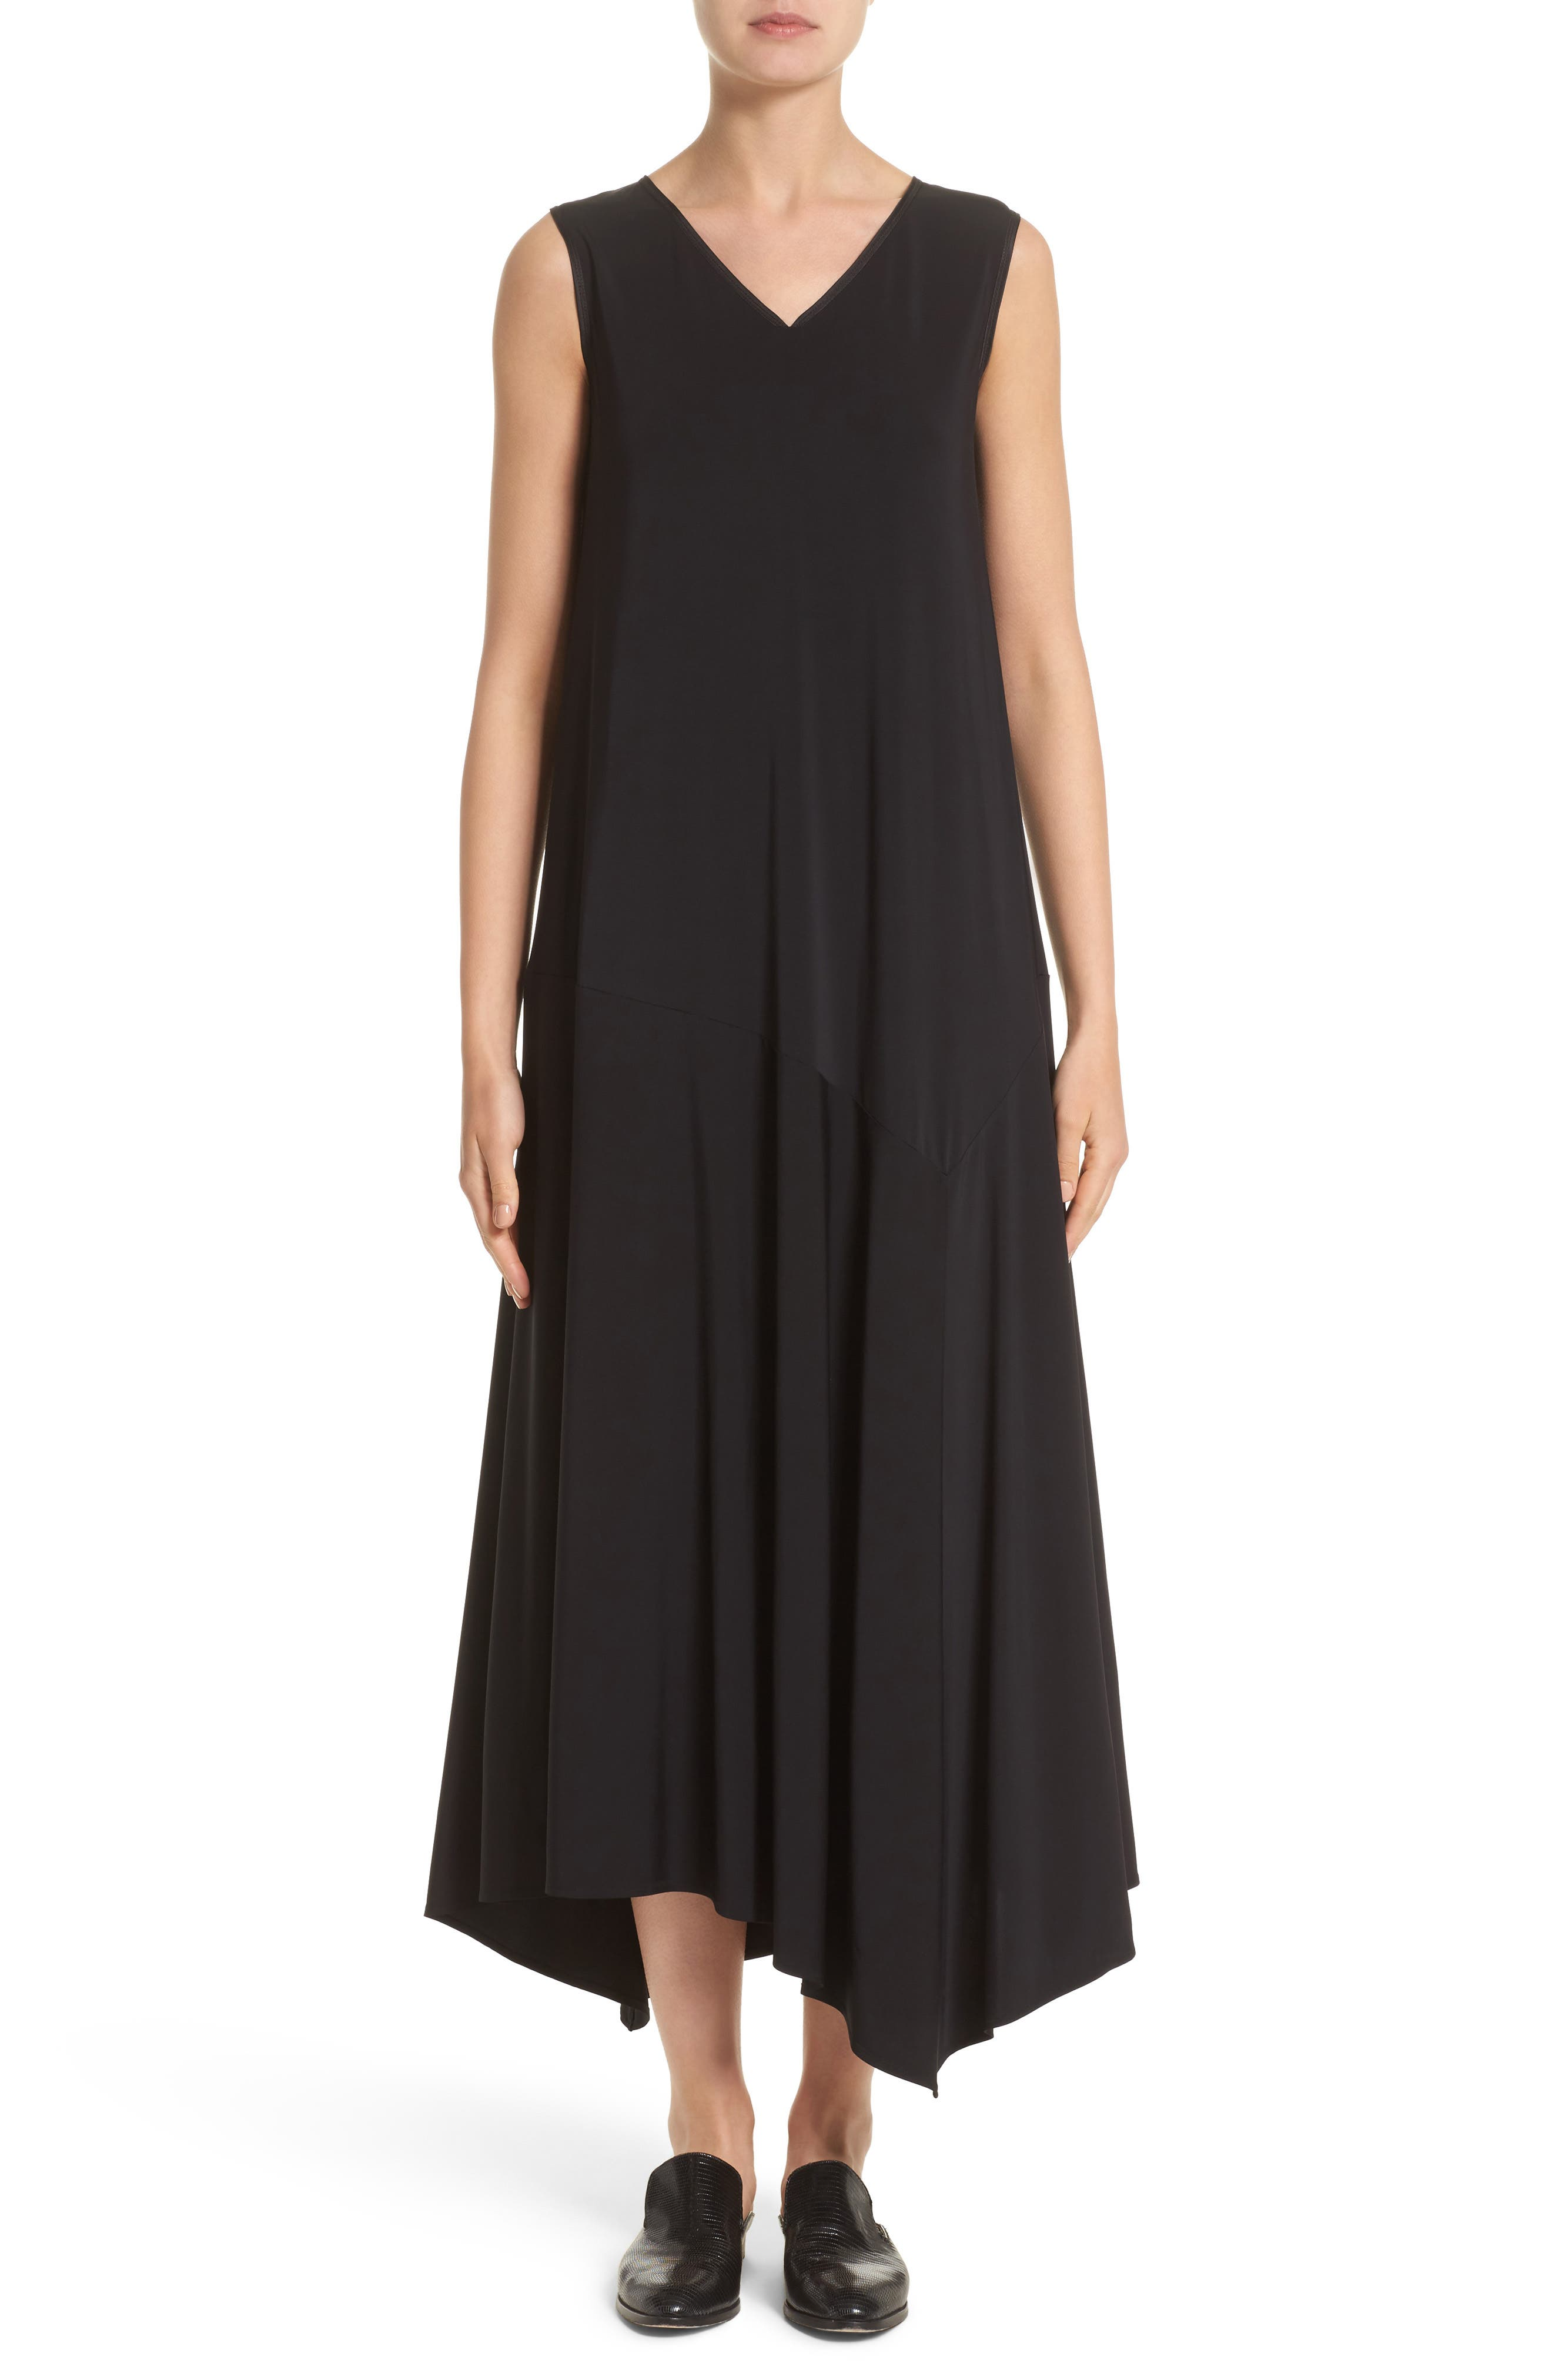 Alternate Image 1 Selected - Lafayette 148 New York Cultivated Crepe Jersey Asymmetrical Dress